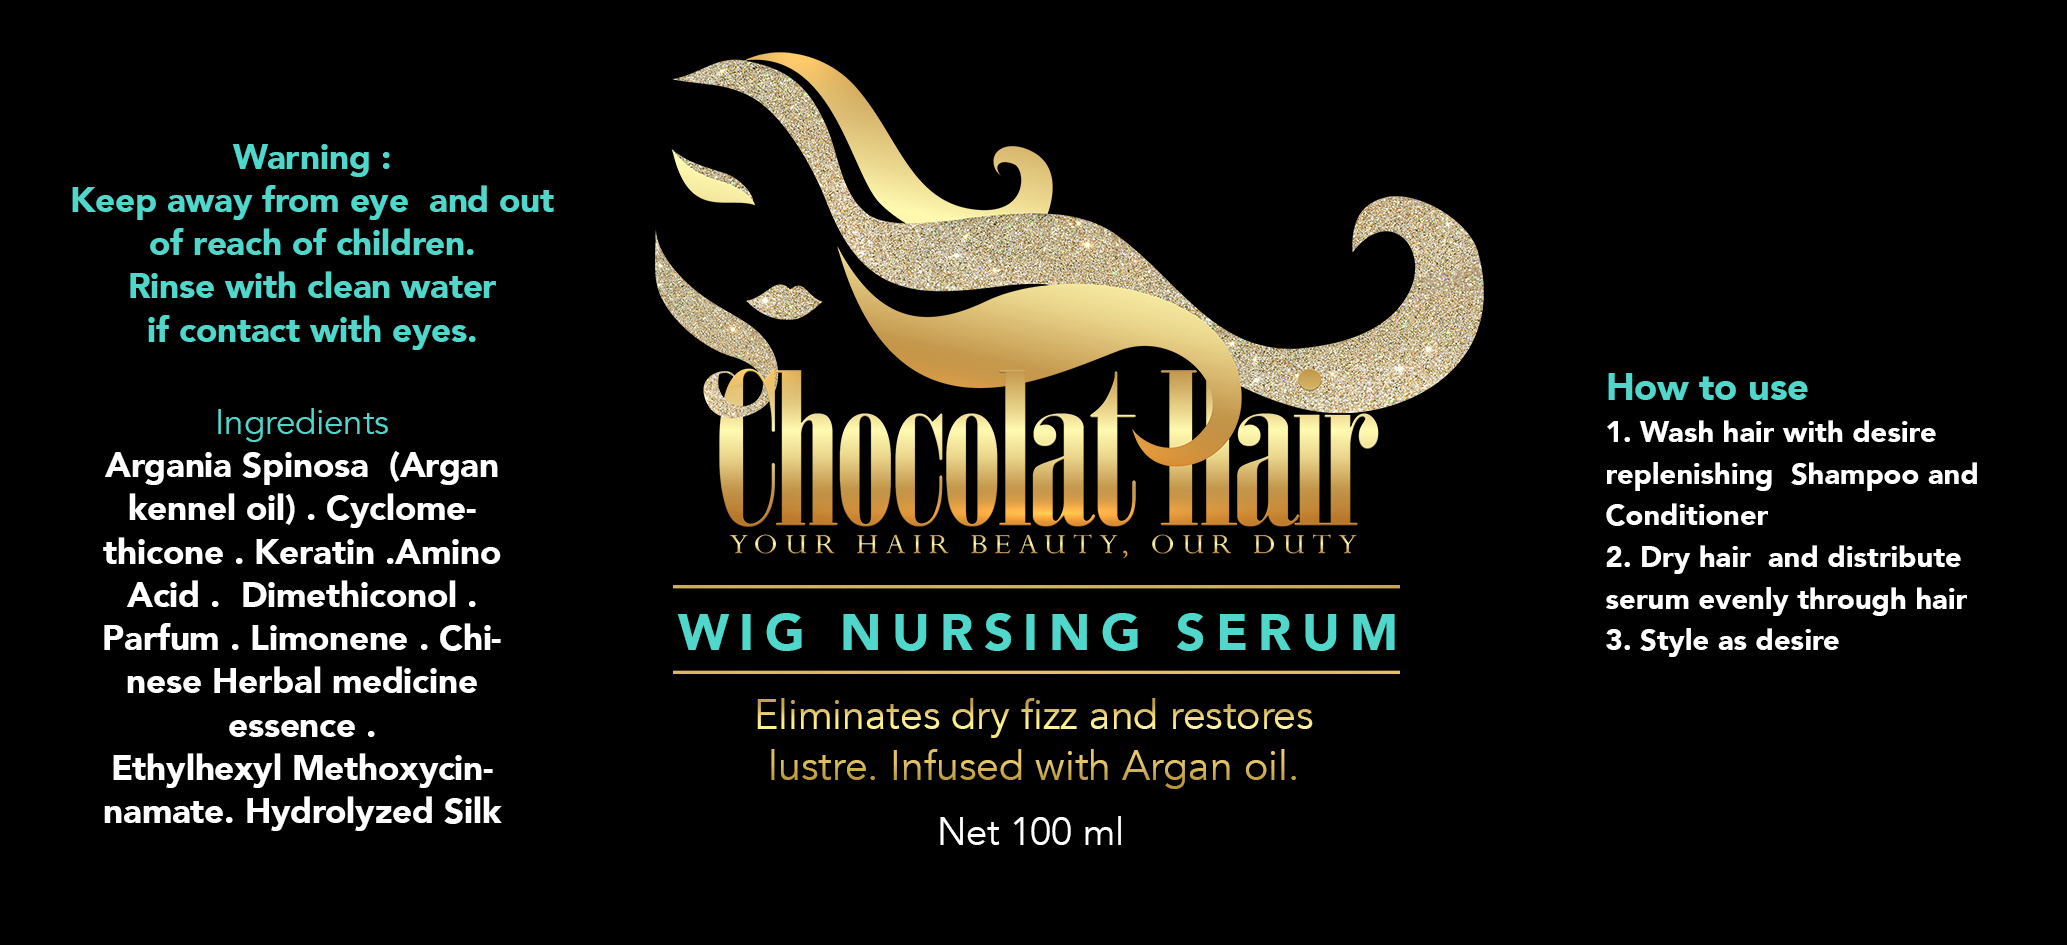 CHOCOLAT HAIR LABEL 2